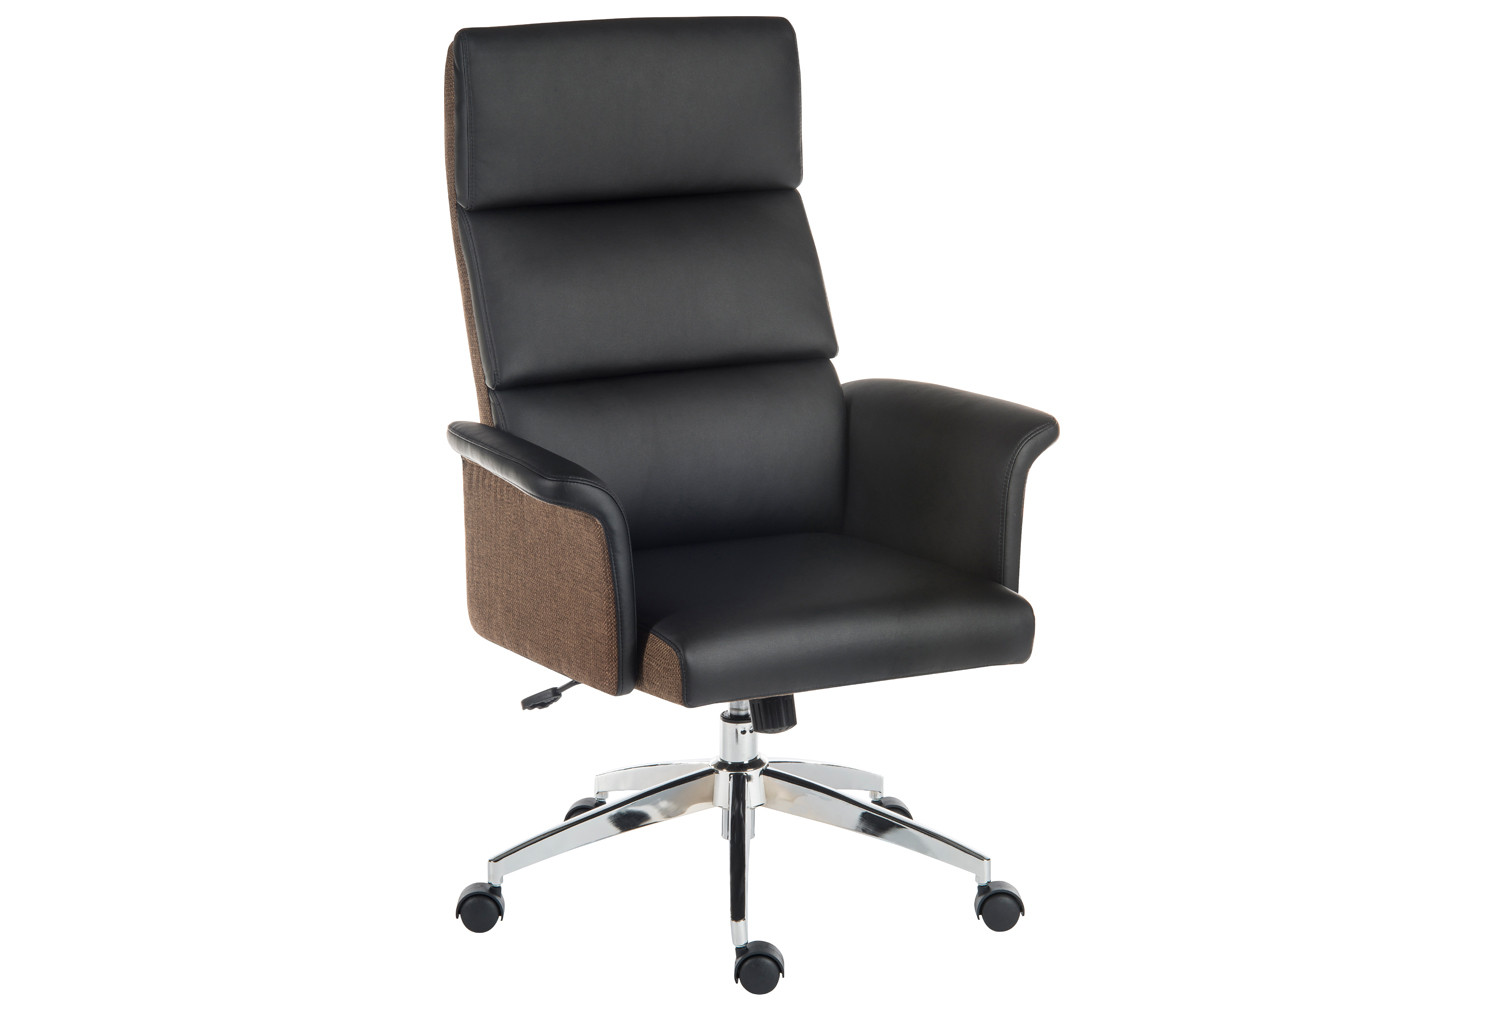 Panache High Back Executive Leather Chair Black